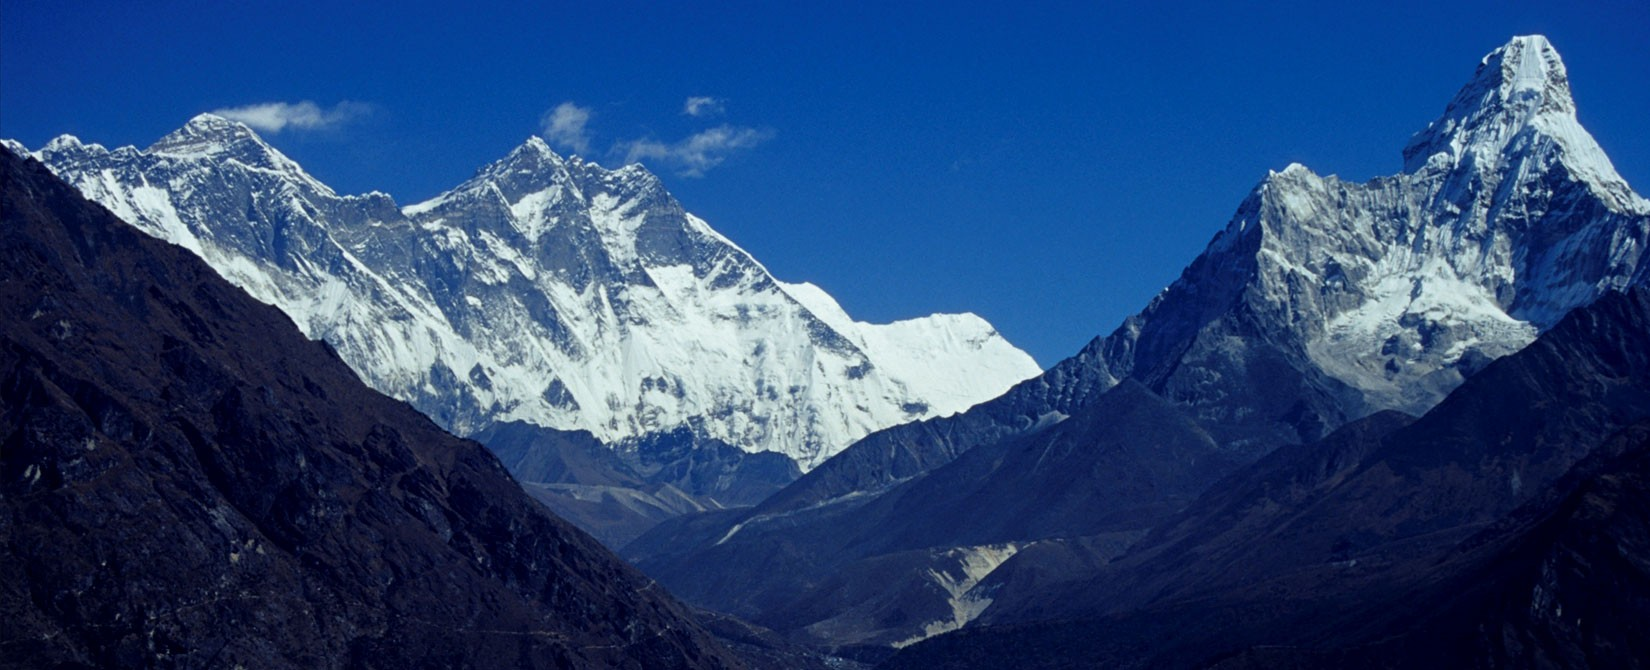 Magnificent View of Mount Ama Dablam